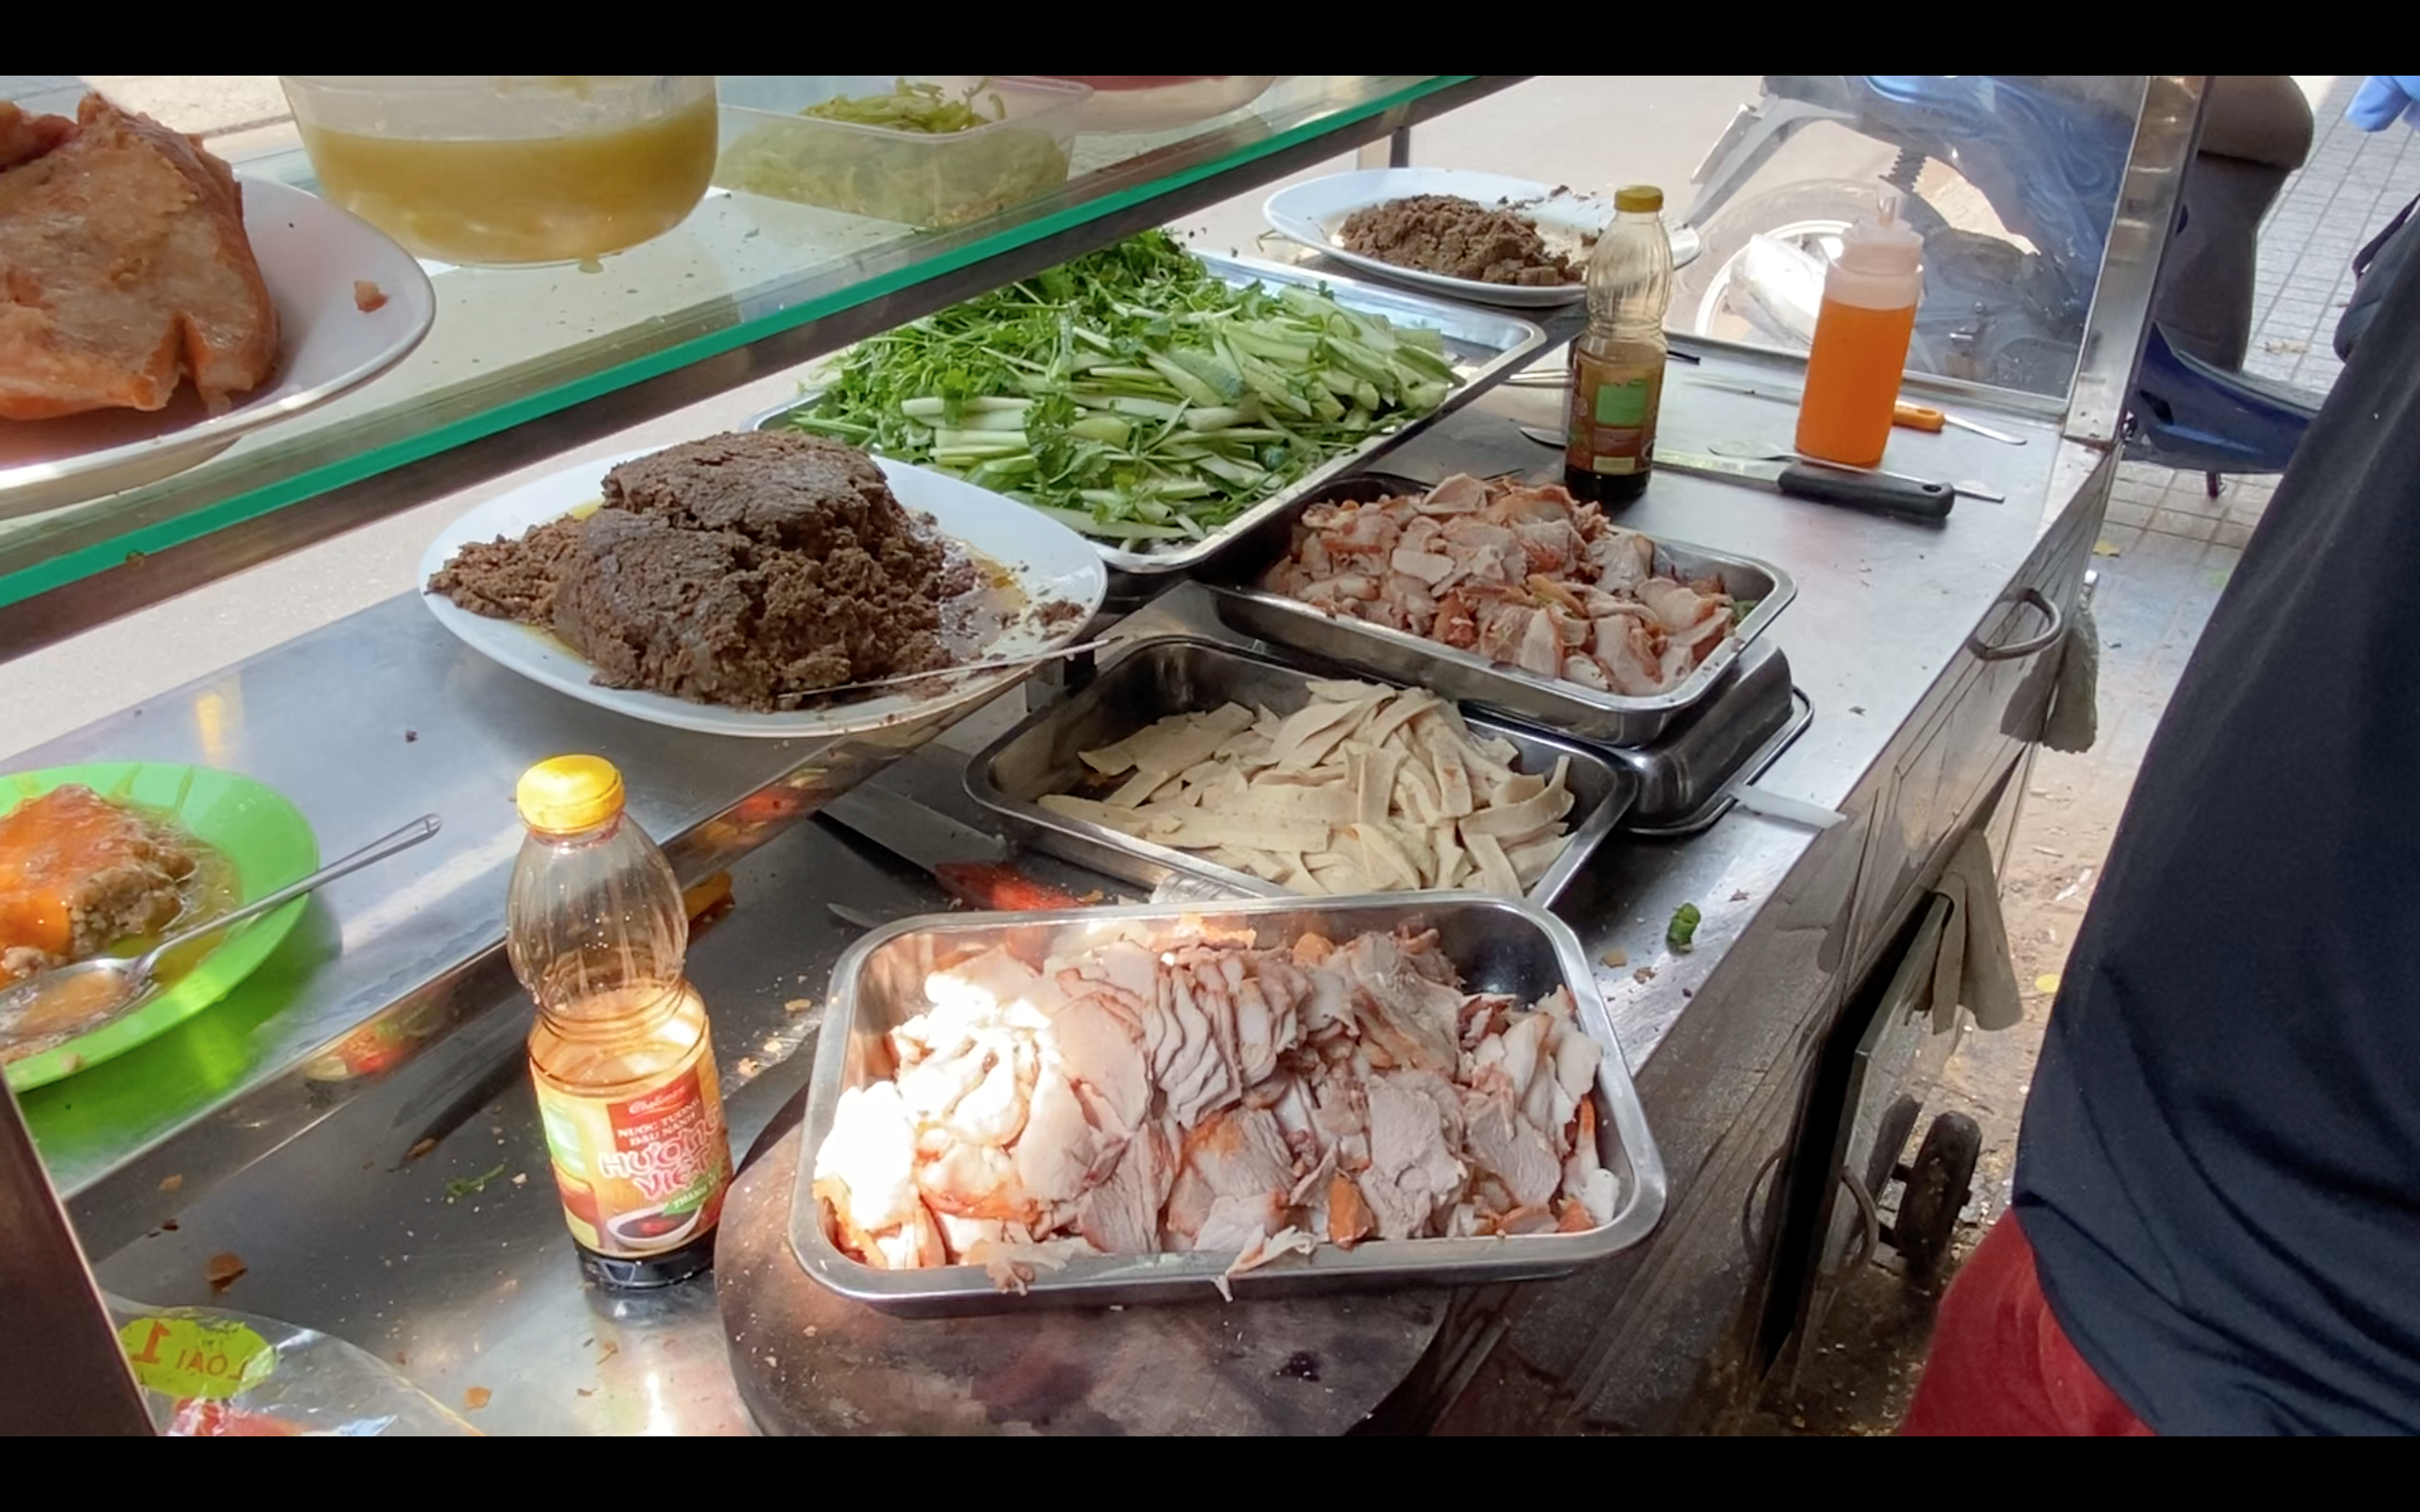 Homemade ingredients are a staple at Banh Mi Bay Ho. Photo: Linh To / Tuoi Tre